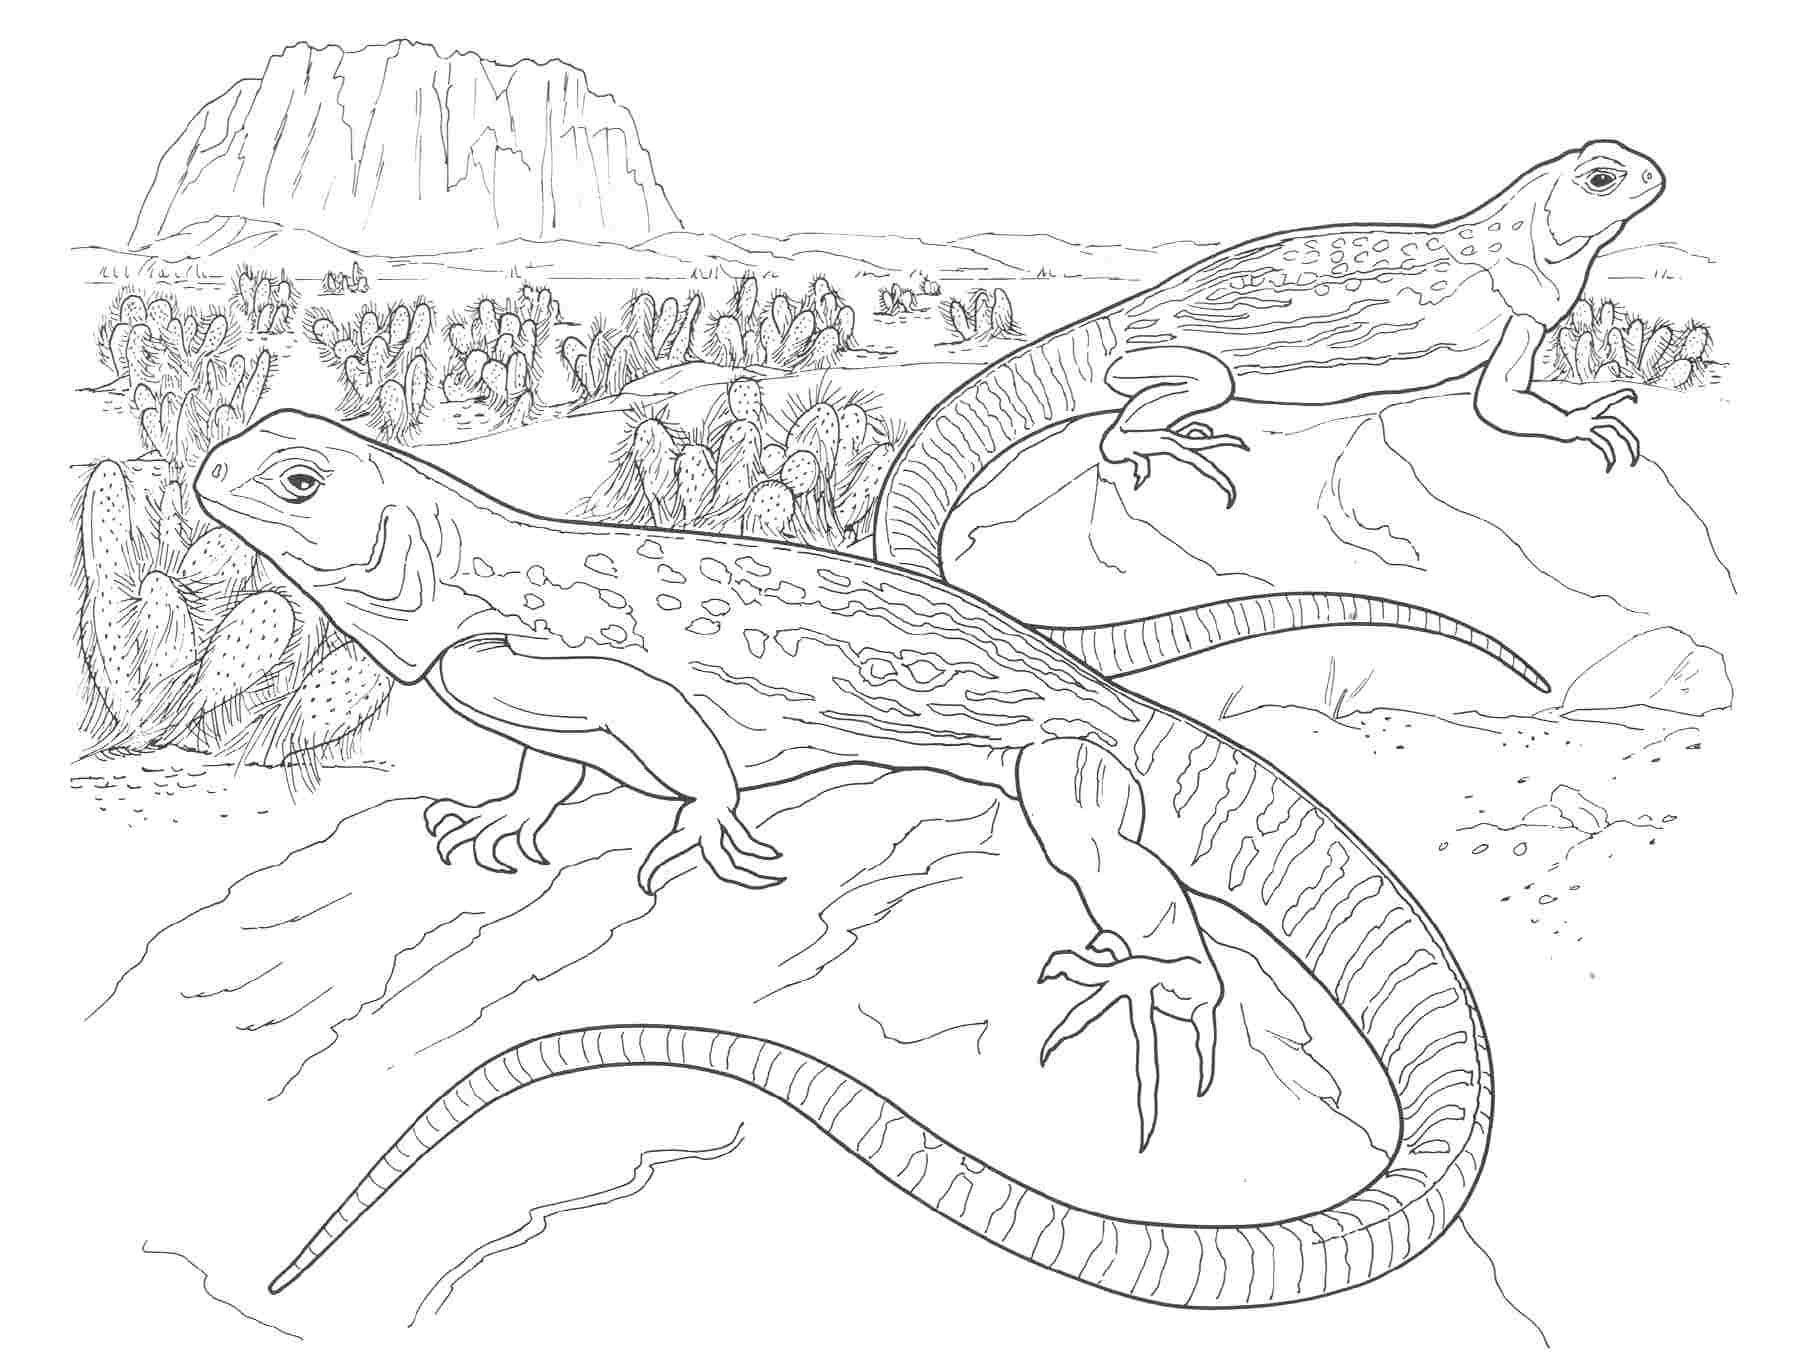 Desert Animals Coloring Pages North American | Coloring Pages - Free Printable Desert Animals